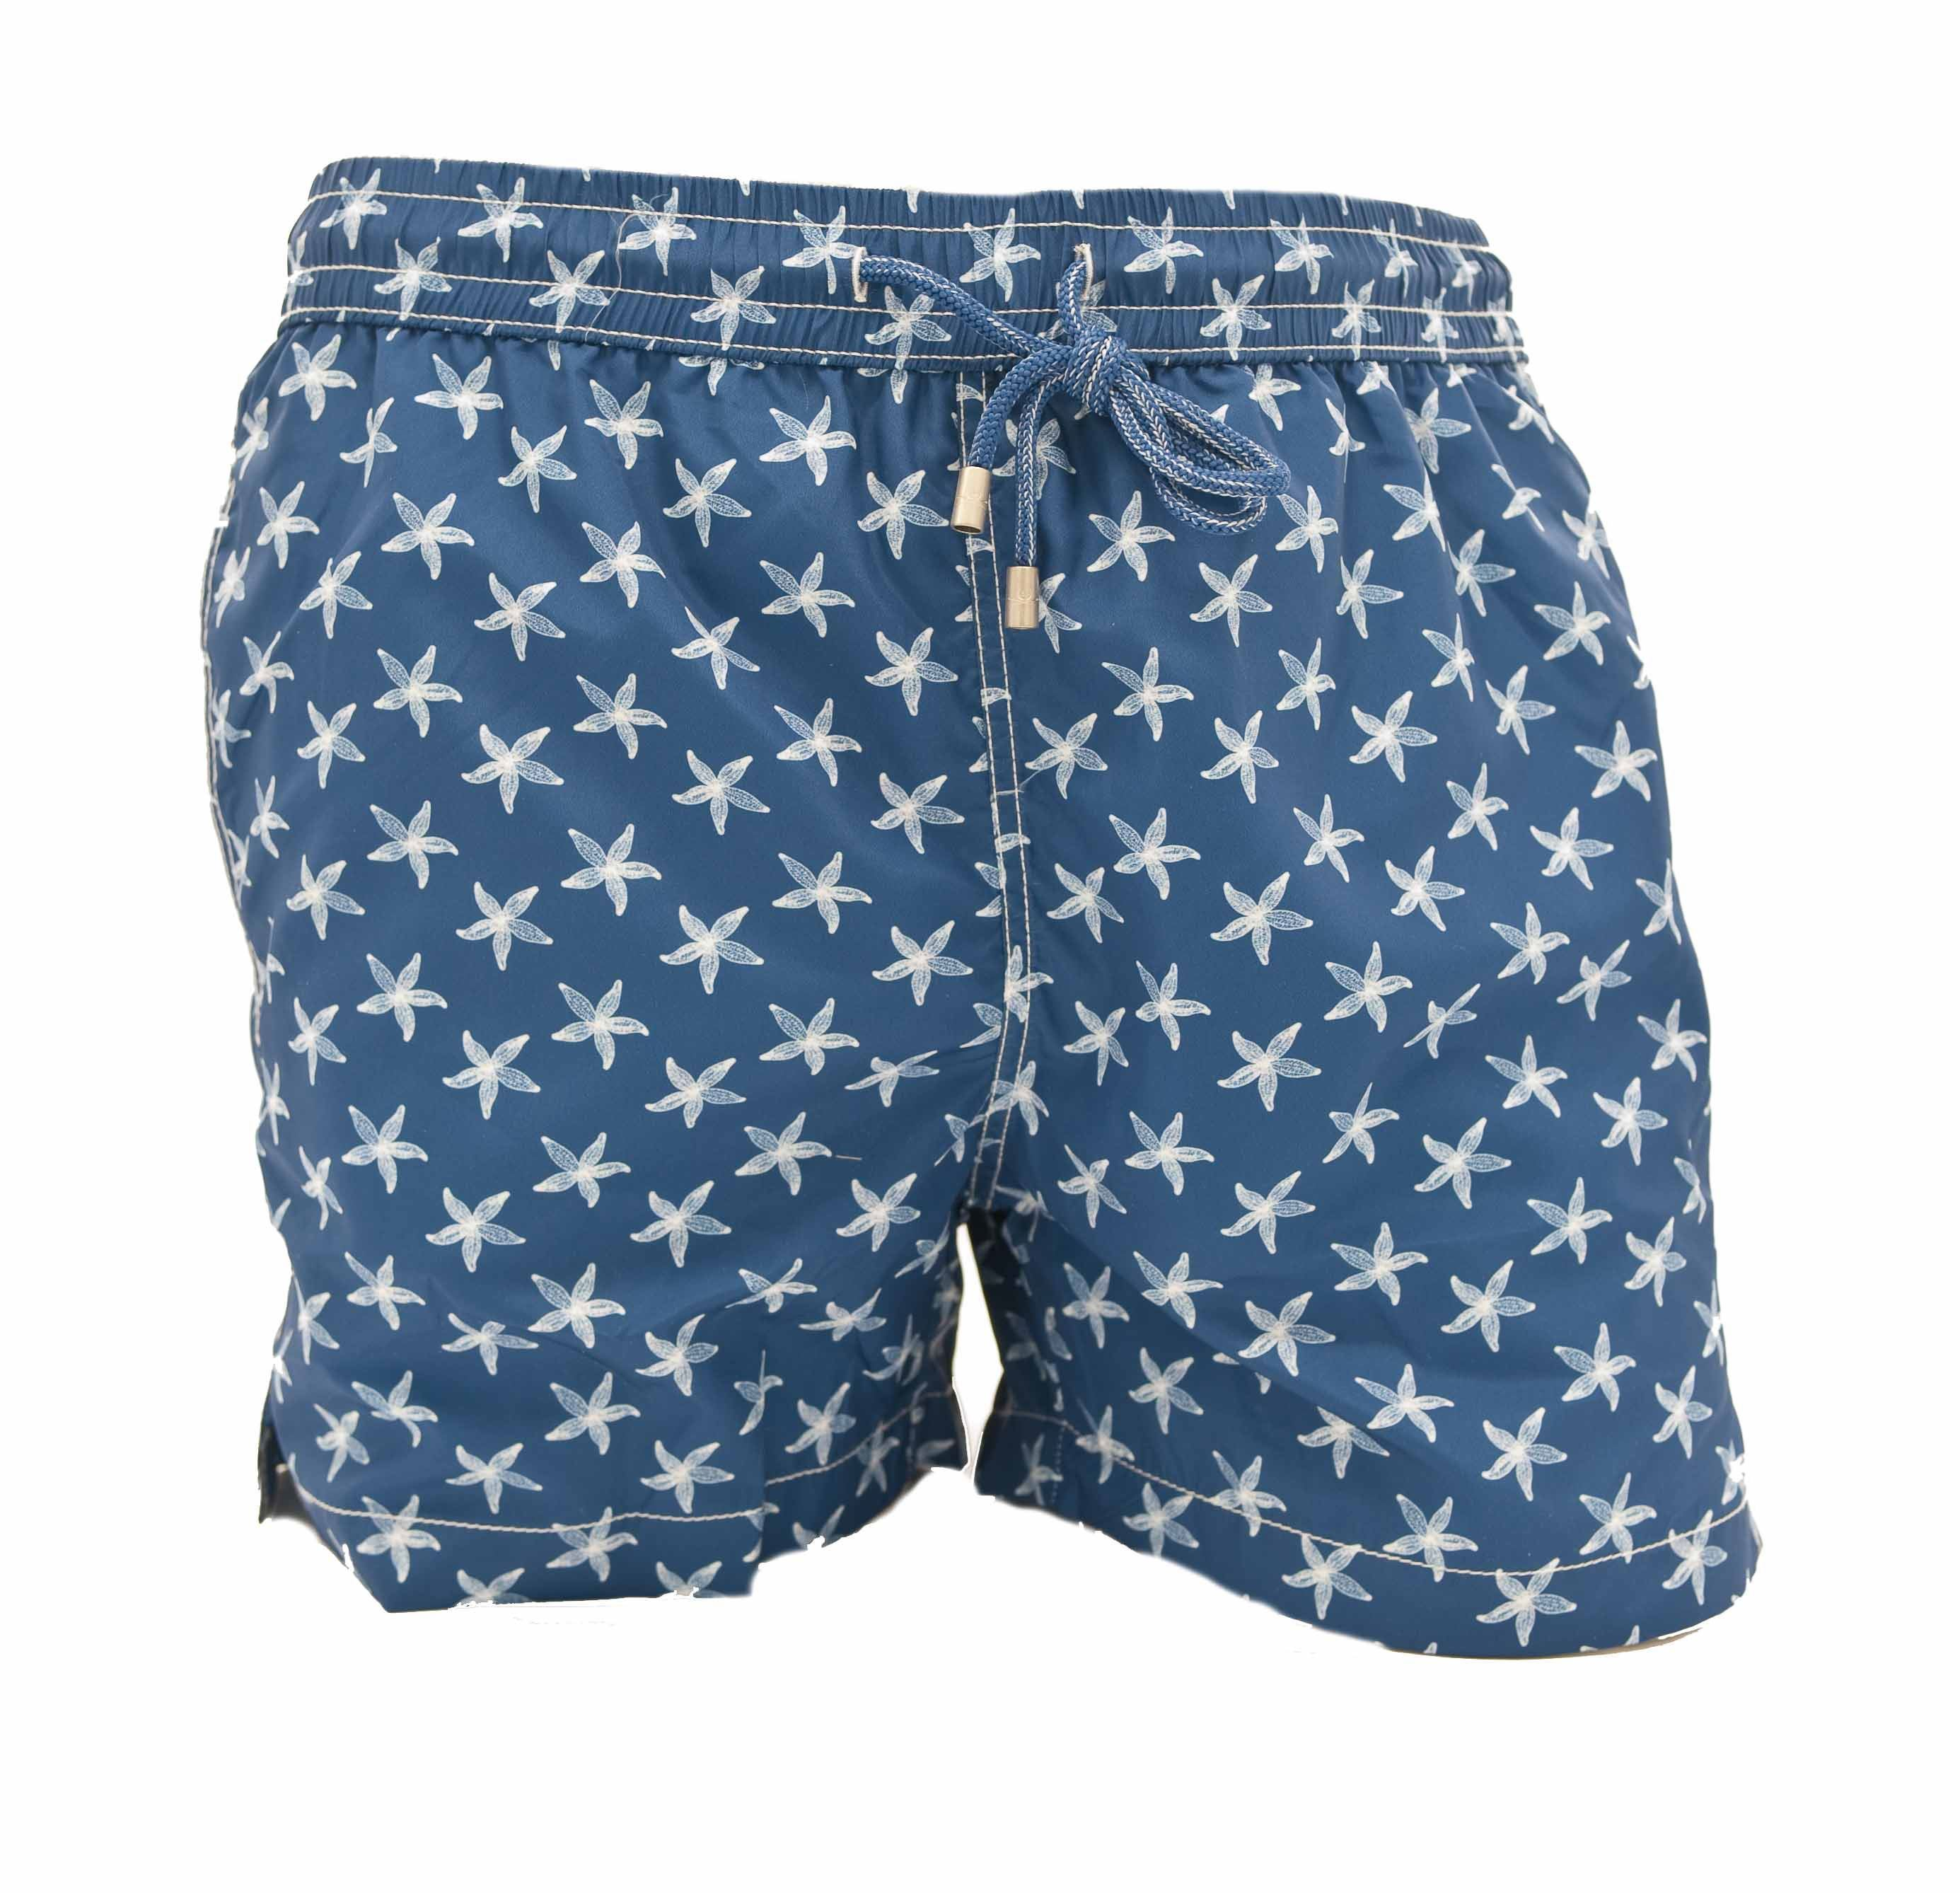 Picture of StarFisPatterned boxer swimming trunks with blue background